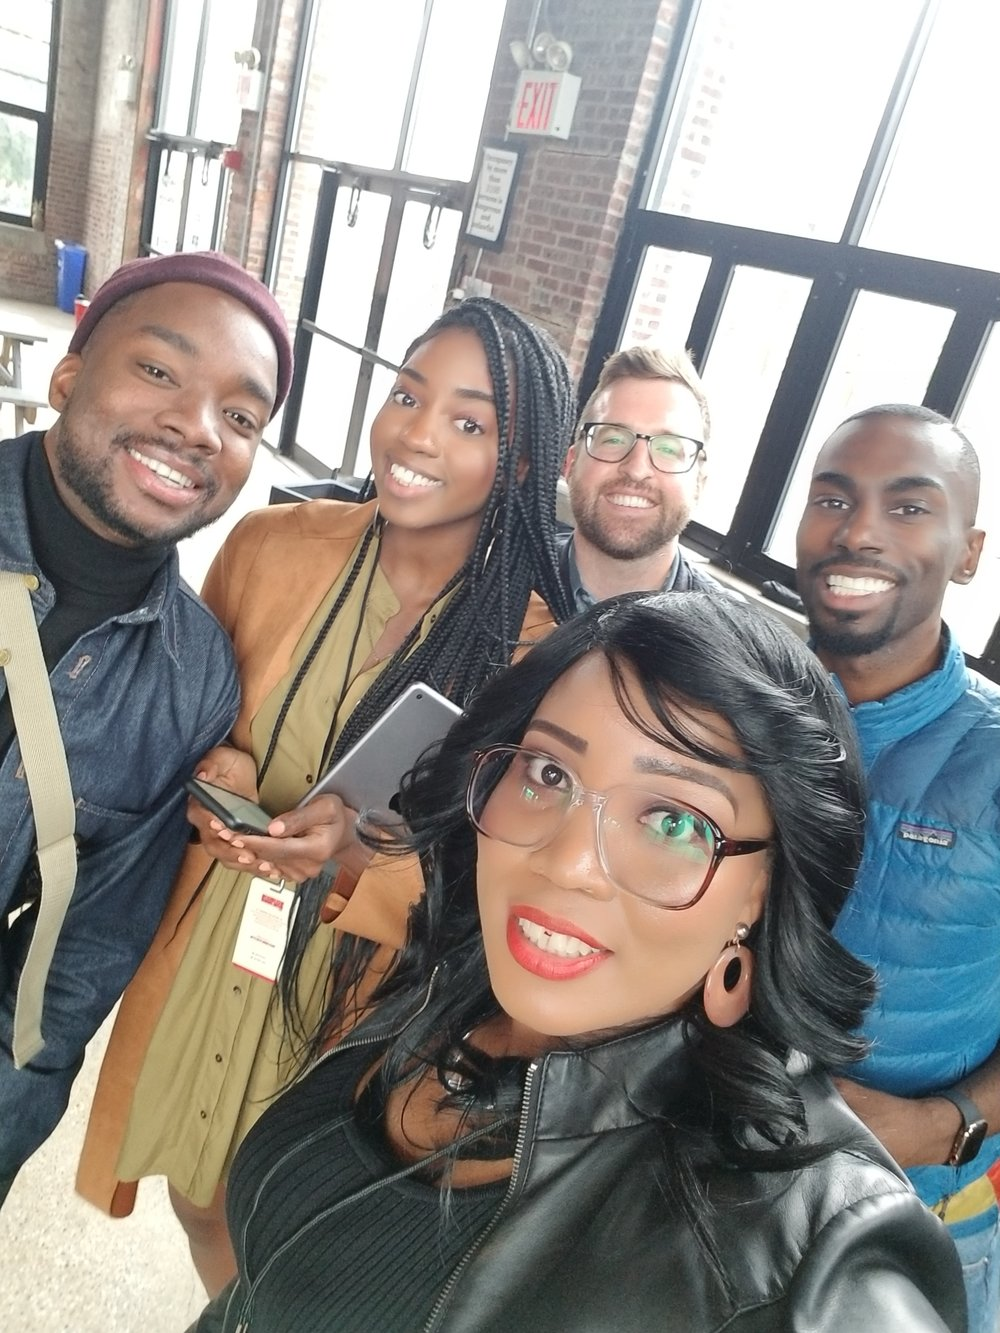 #CultureCon 2018 Squarespace team